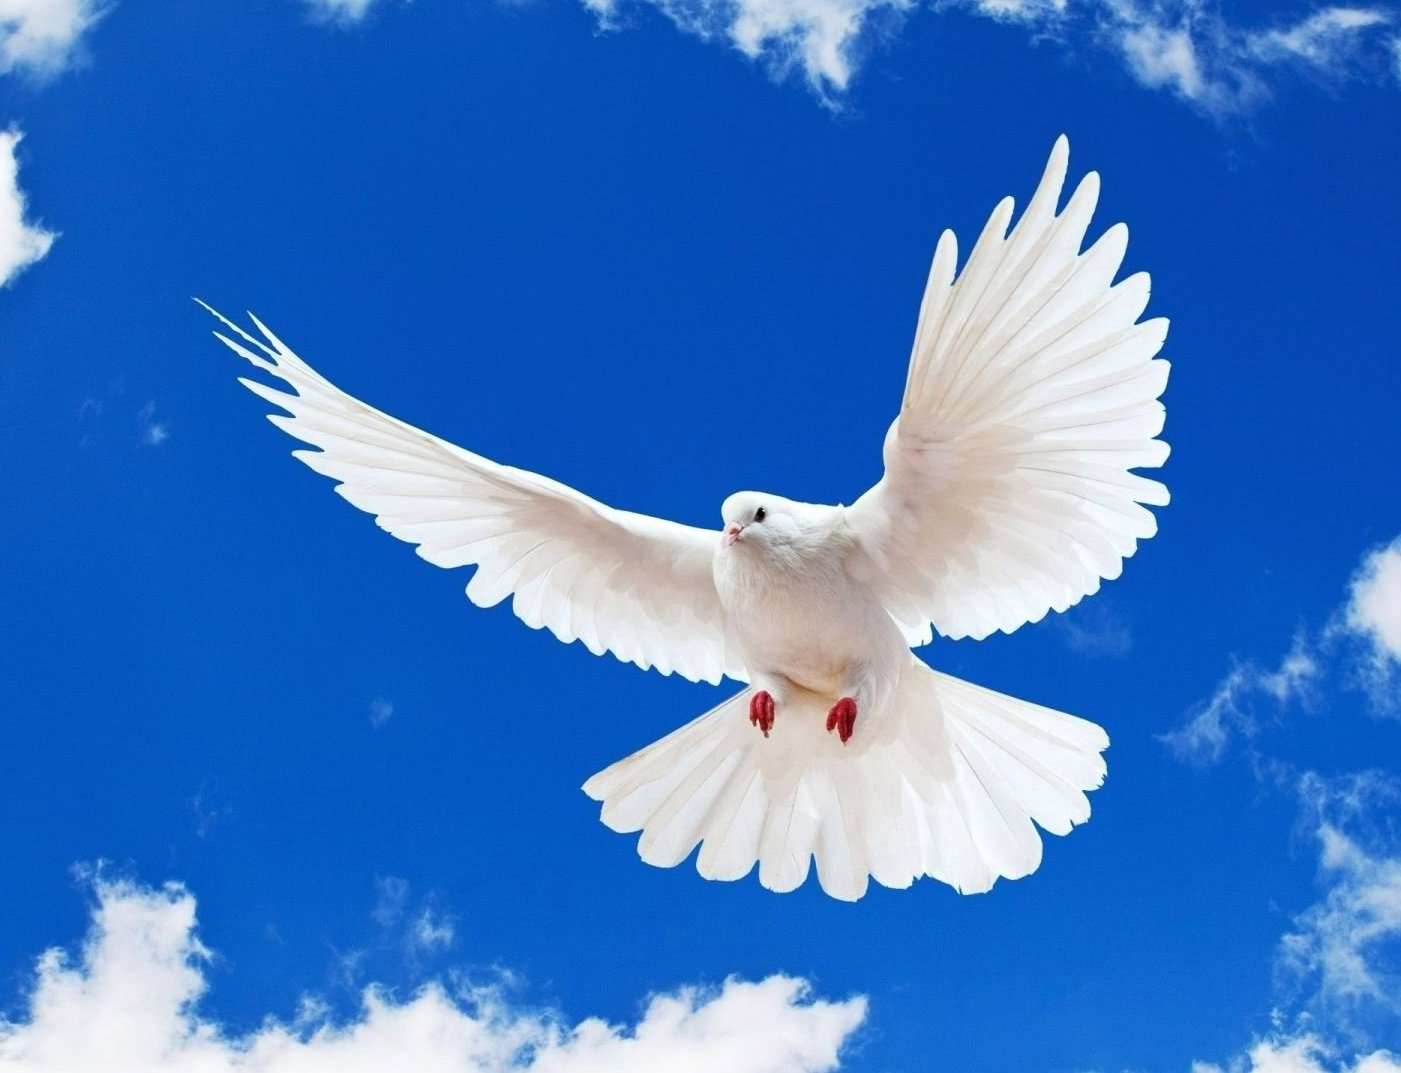 White dove coincidence